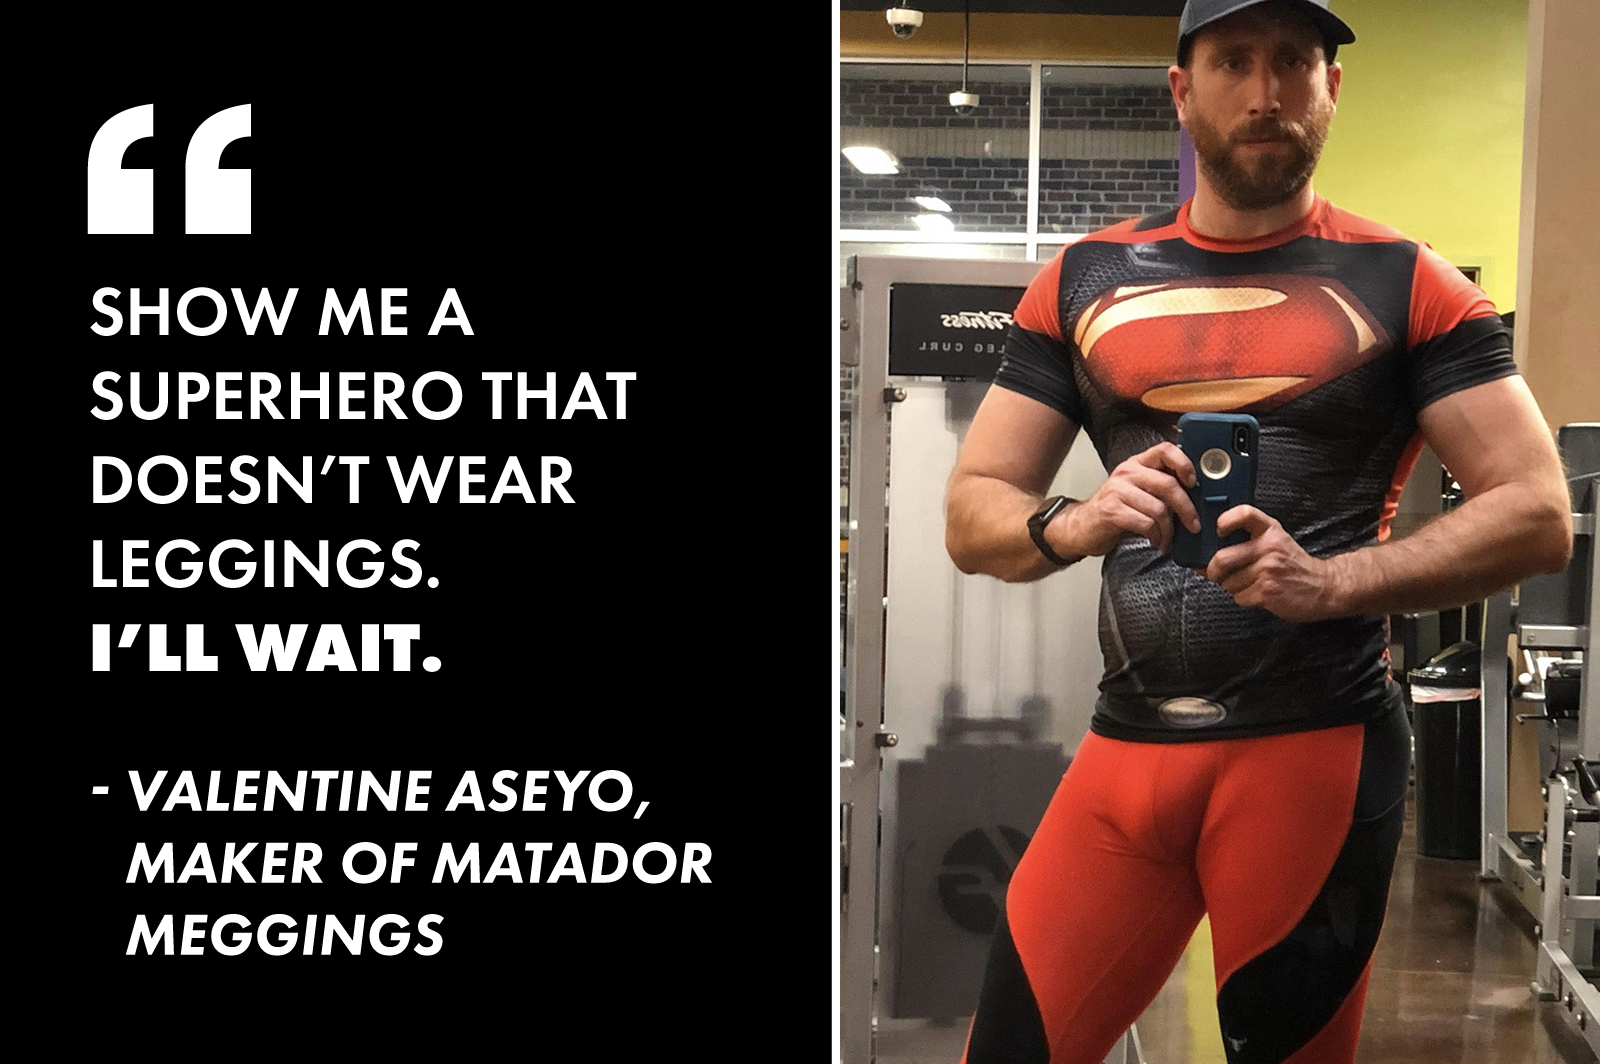 What Makes Our Meggings Different?